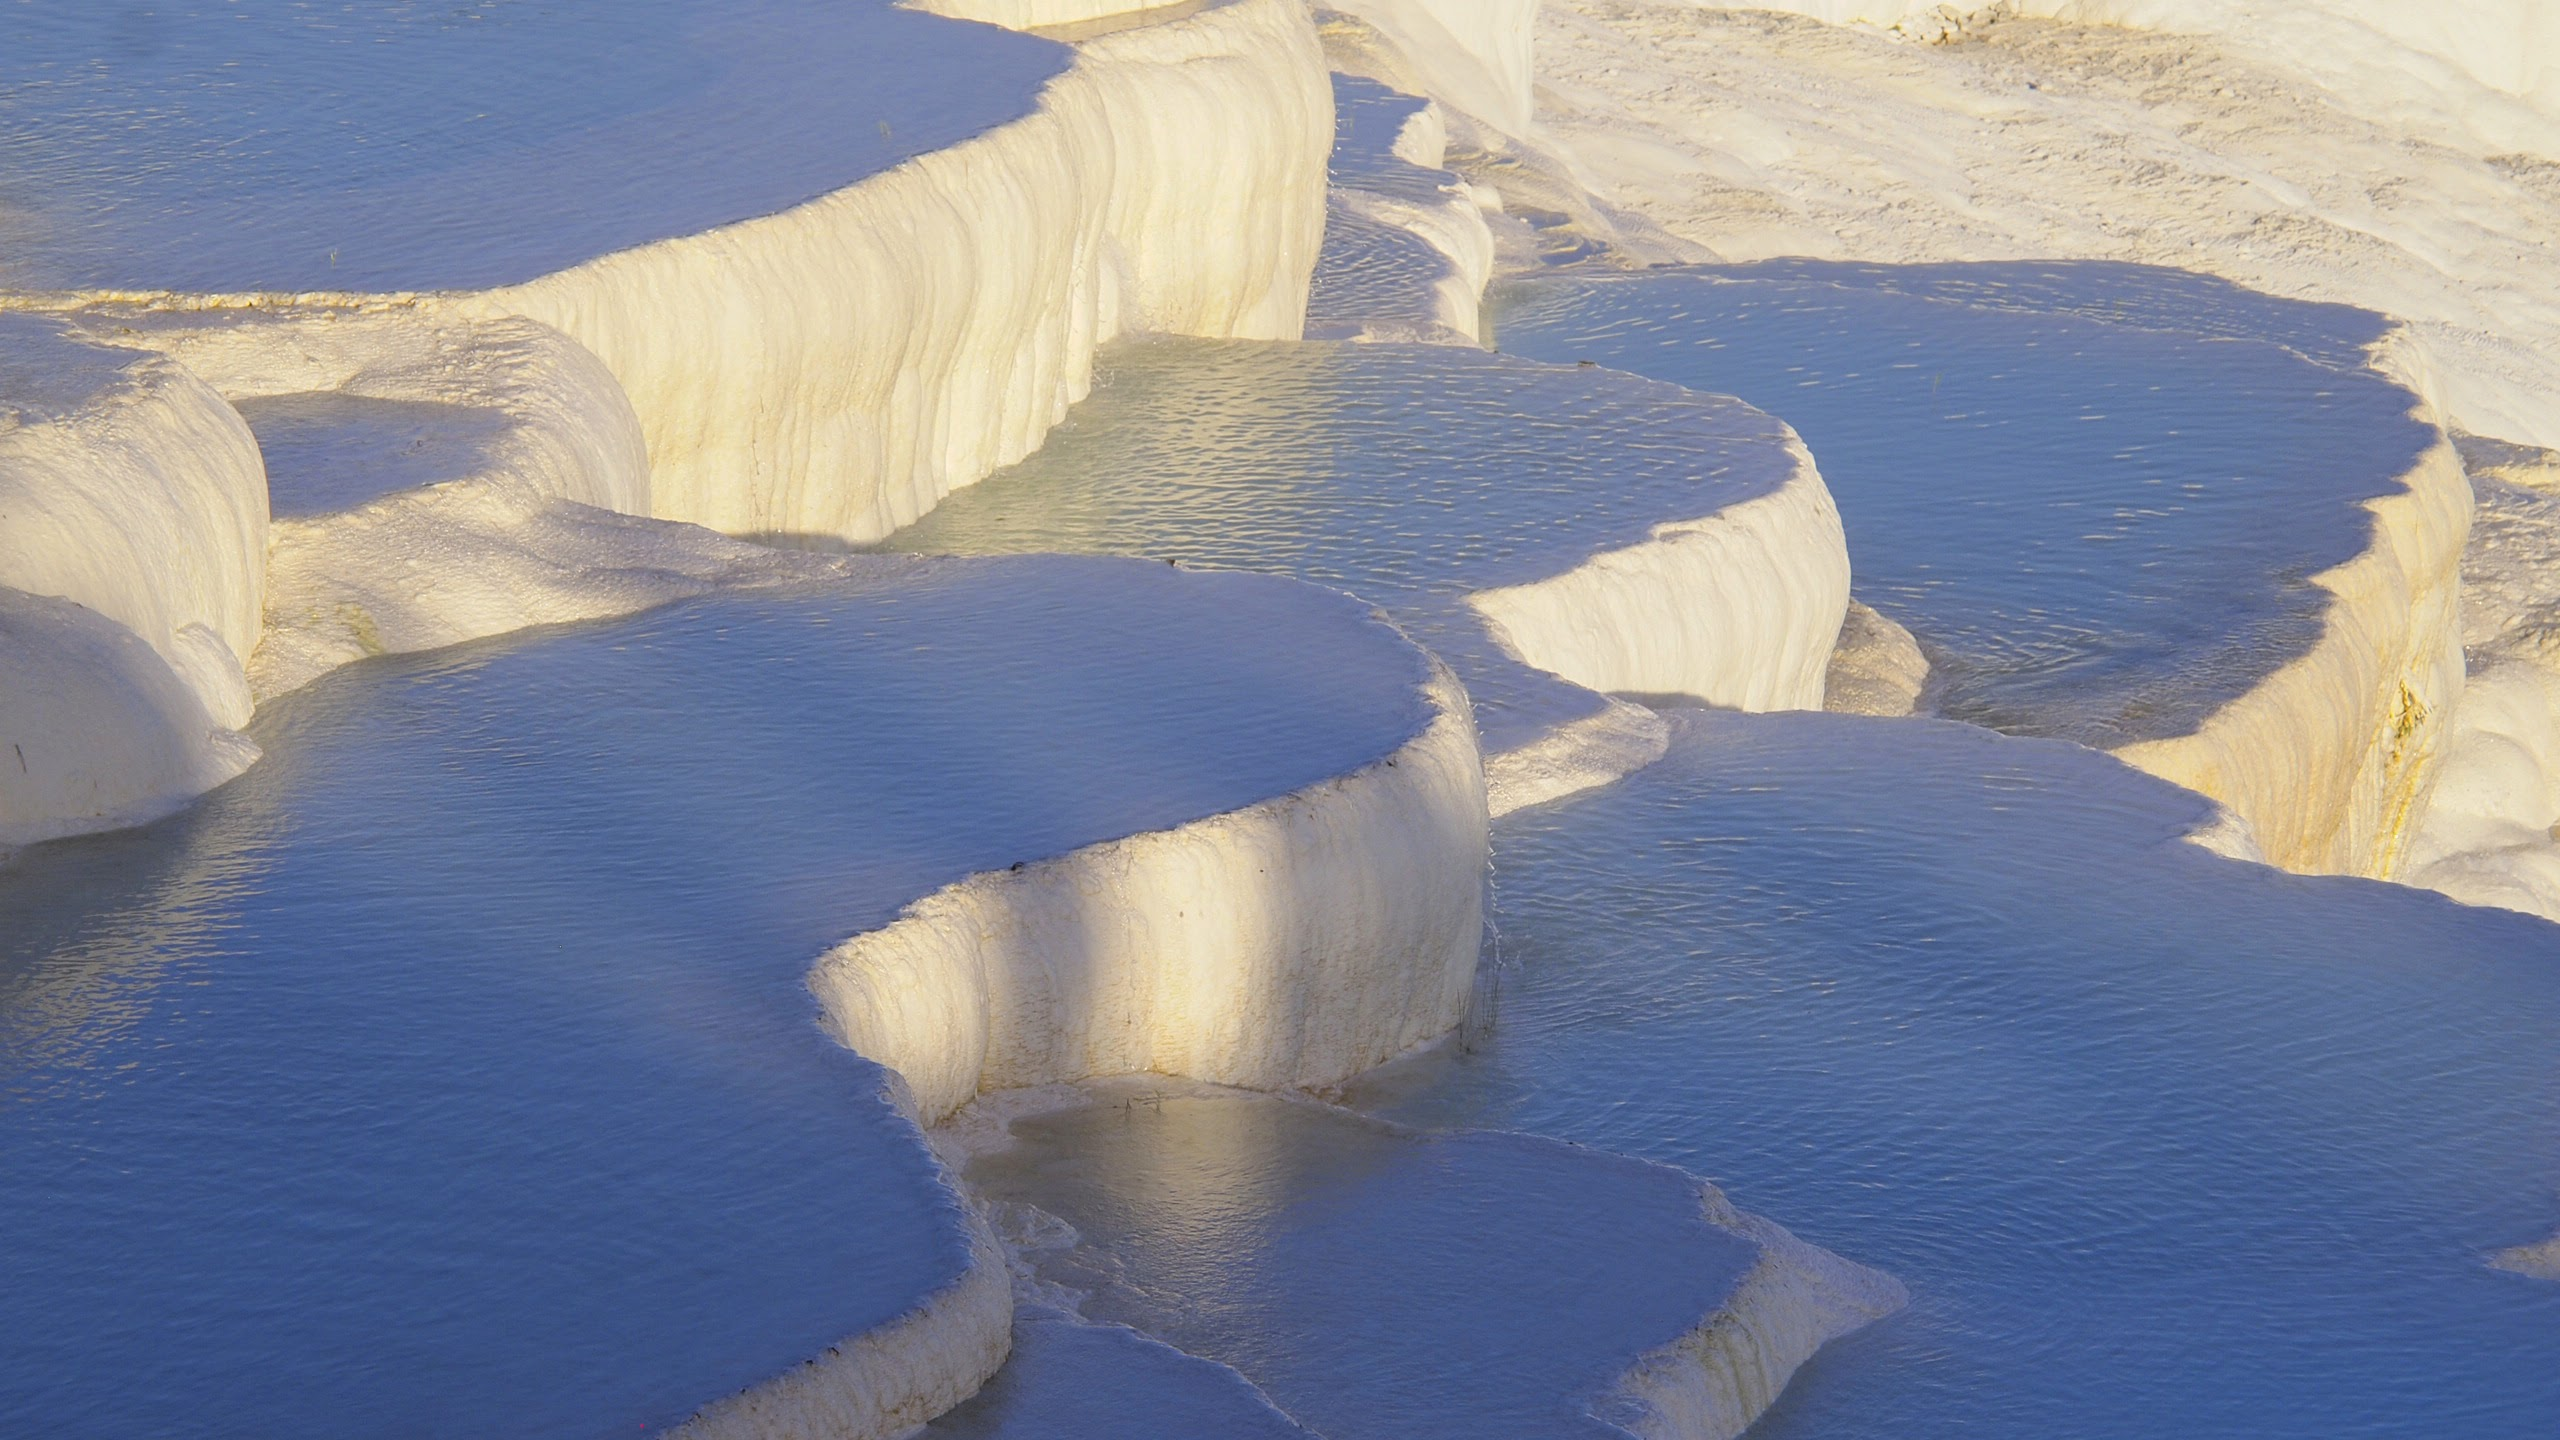 The travertine pools of Pamukkale